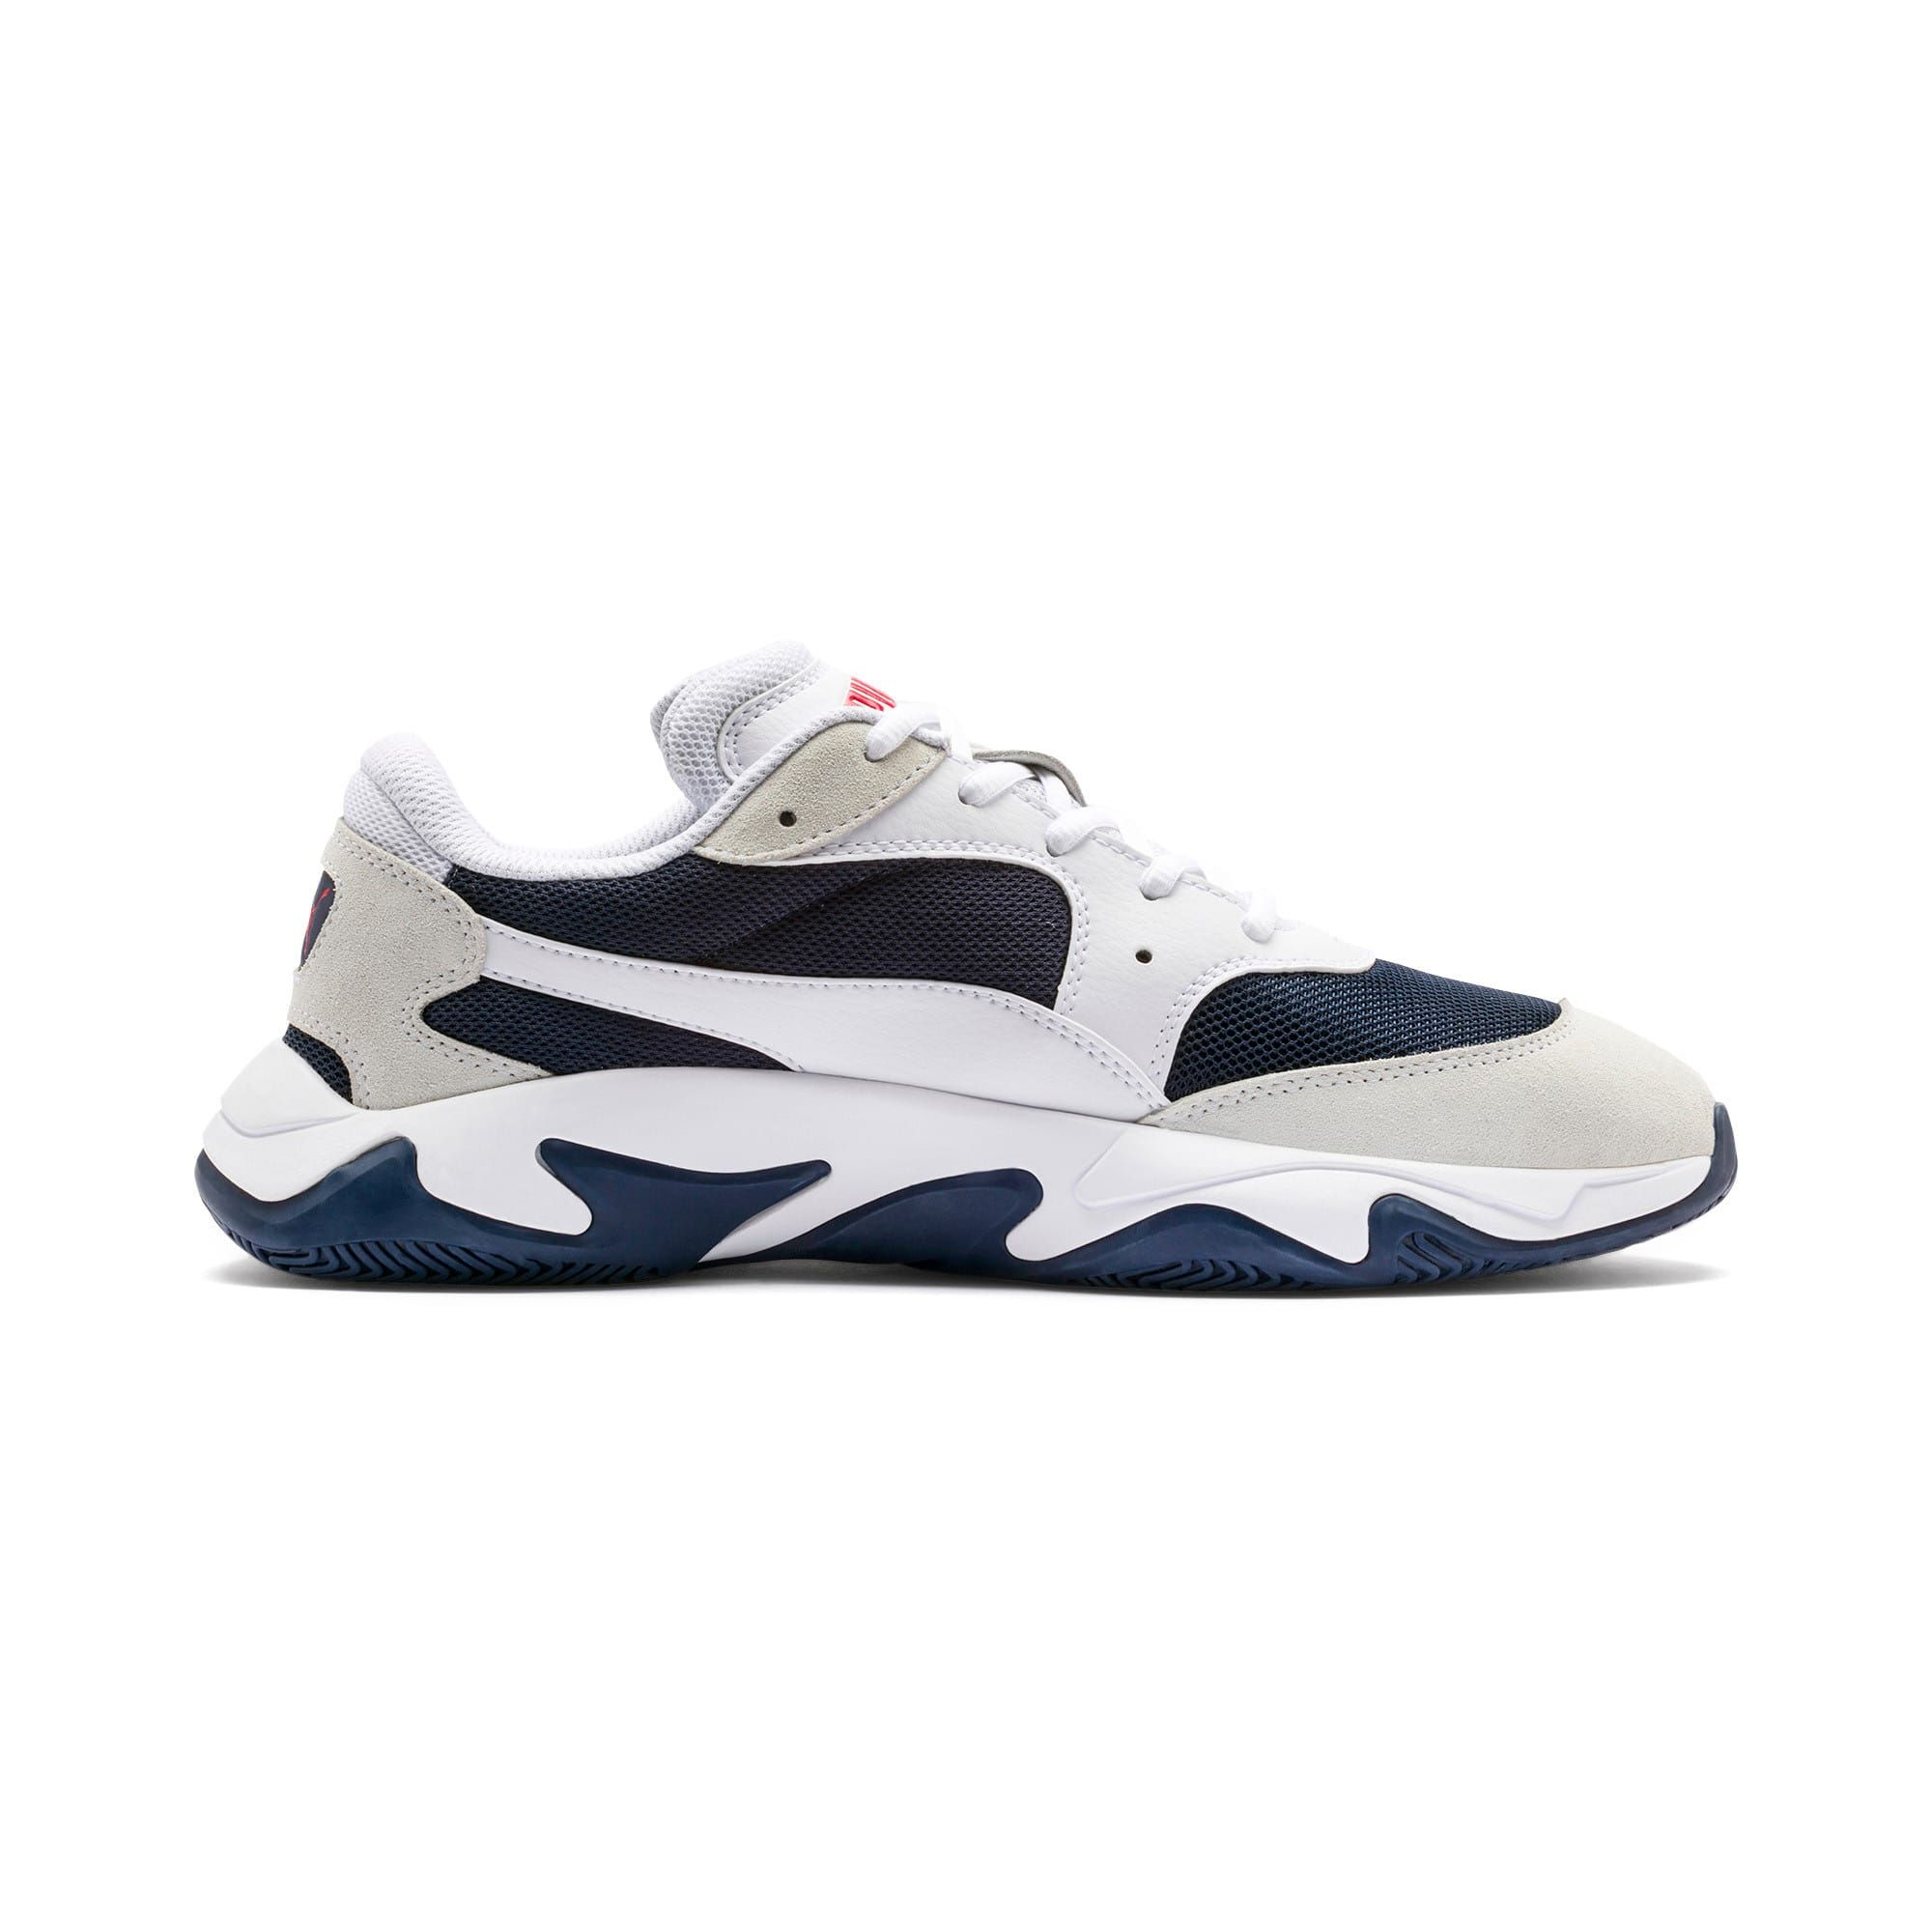 PUMA Storm Adrenaline Trainers in White/Peacoat size 9.5 ...